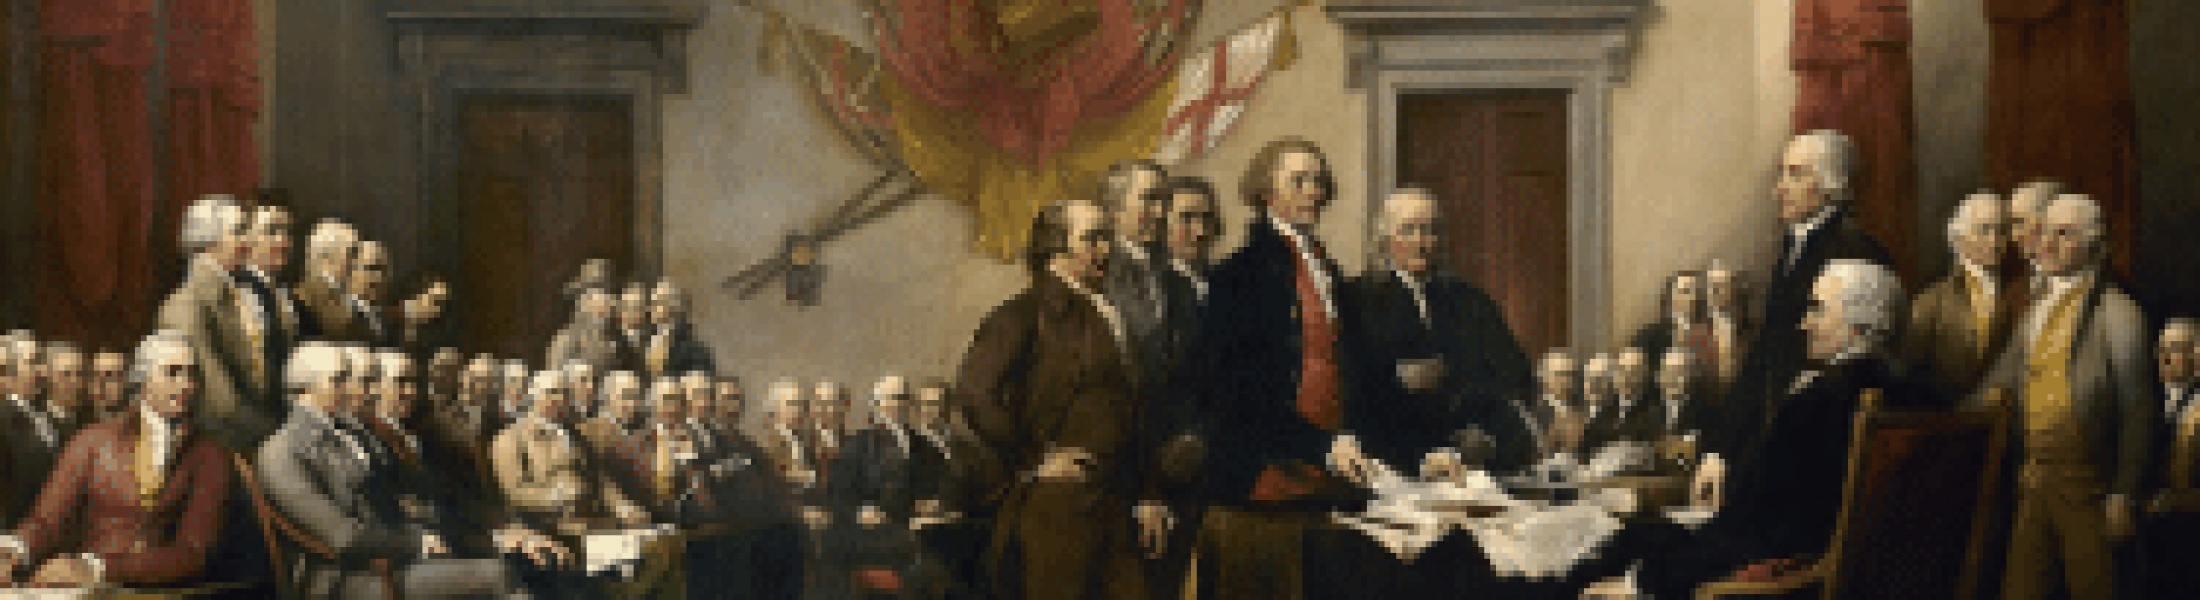 declaration-of-independence-by-john-trumbull - 1 Stop ...